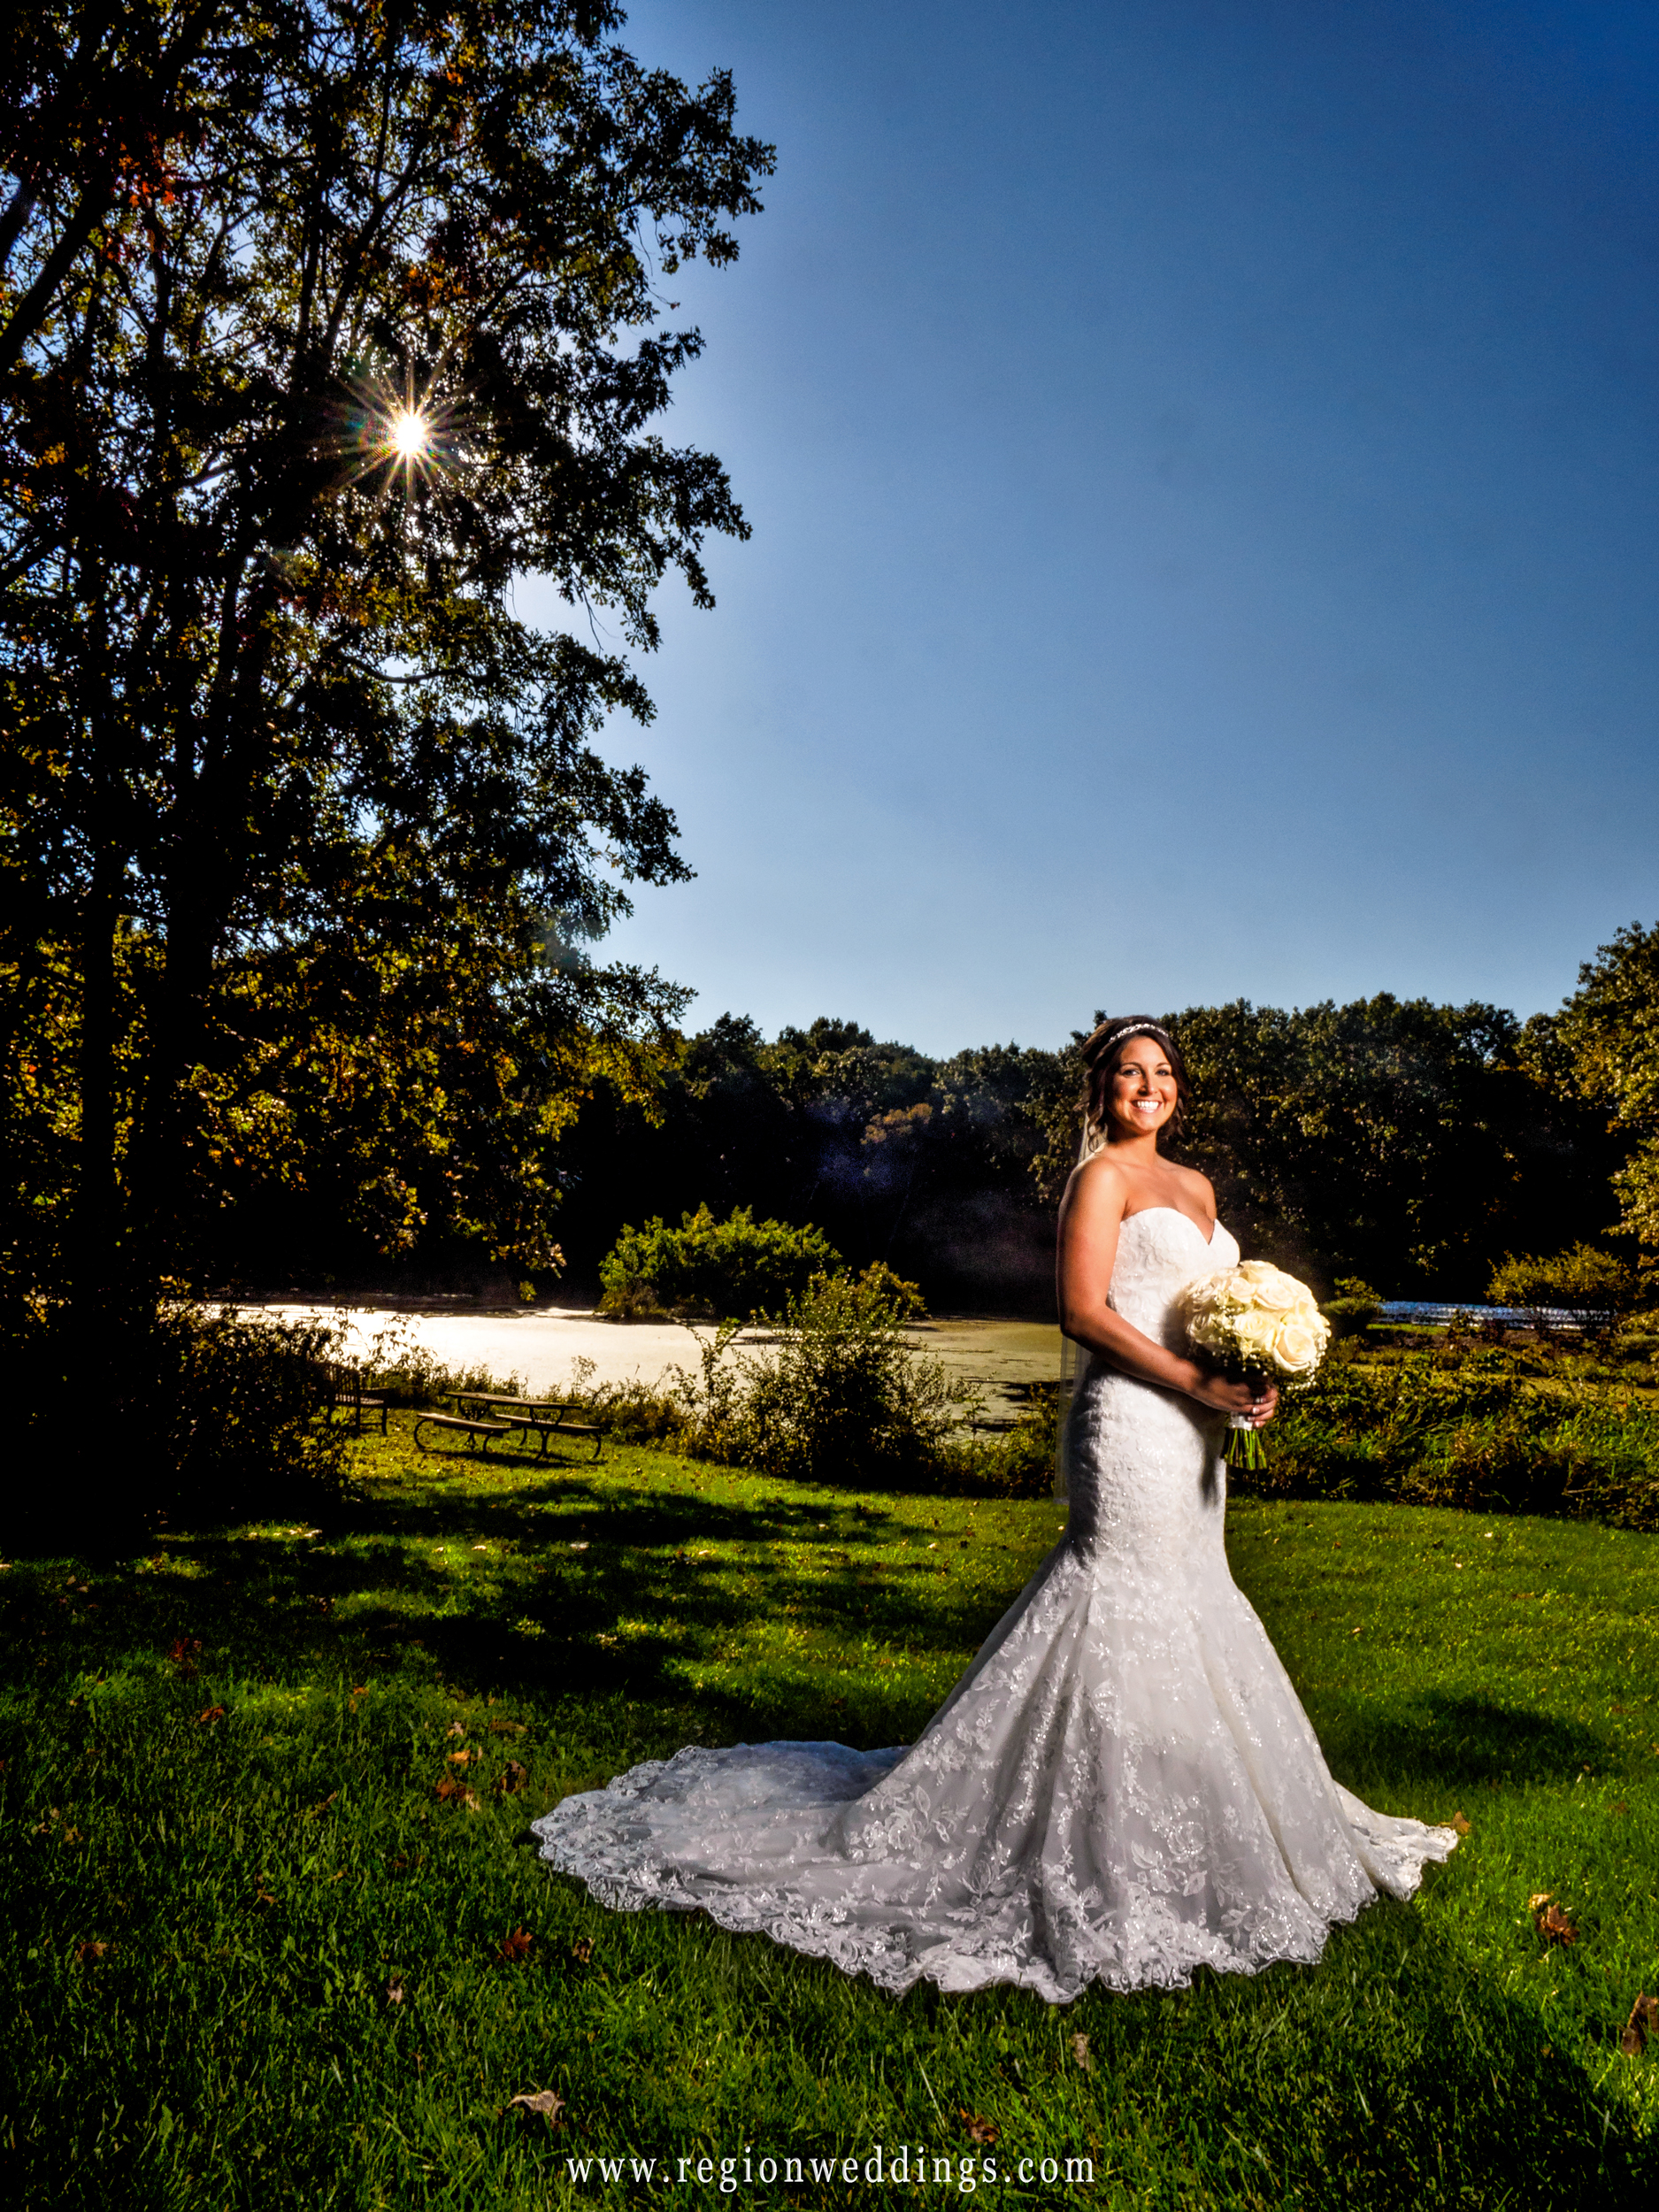 The bride shows off her dress at Taltree Arboretum.